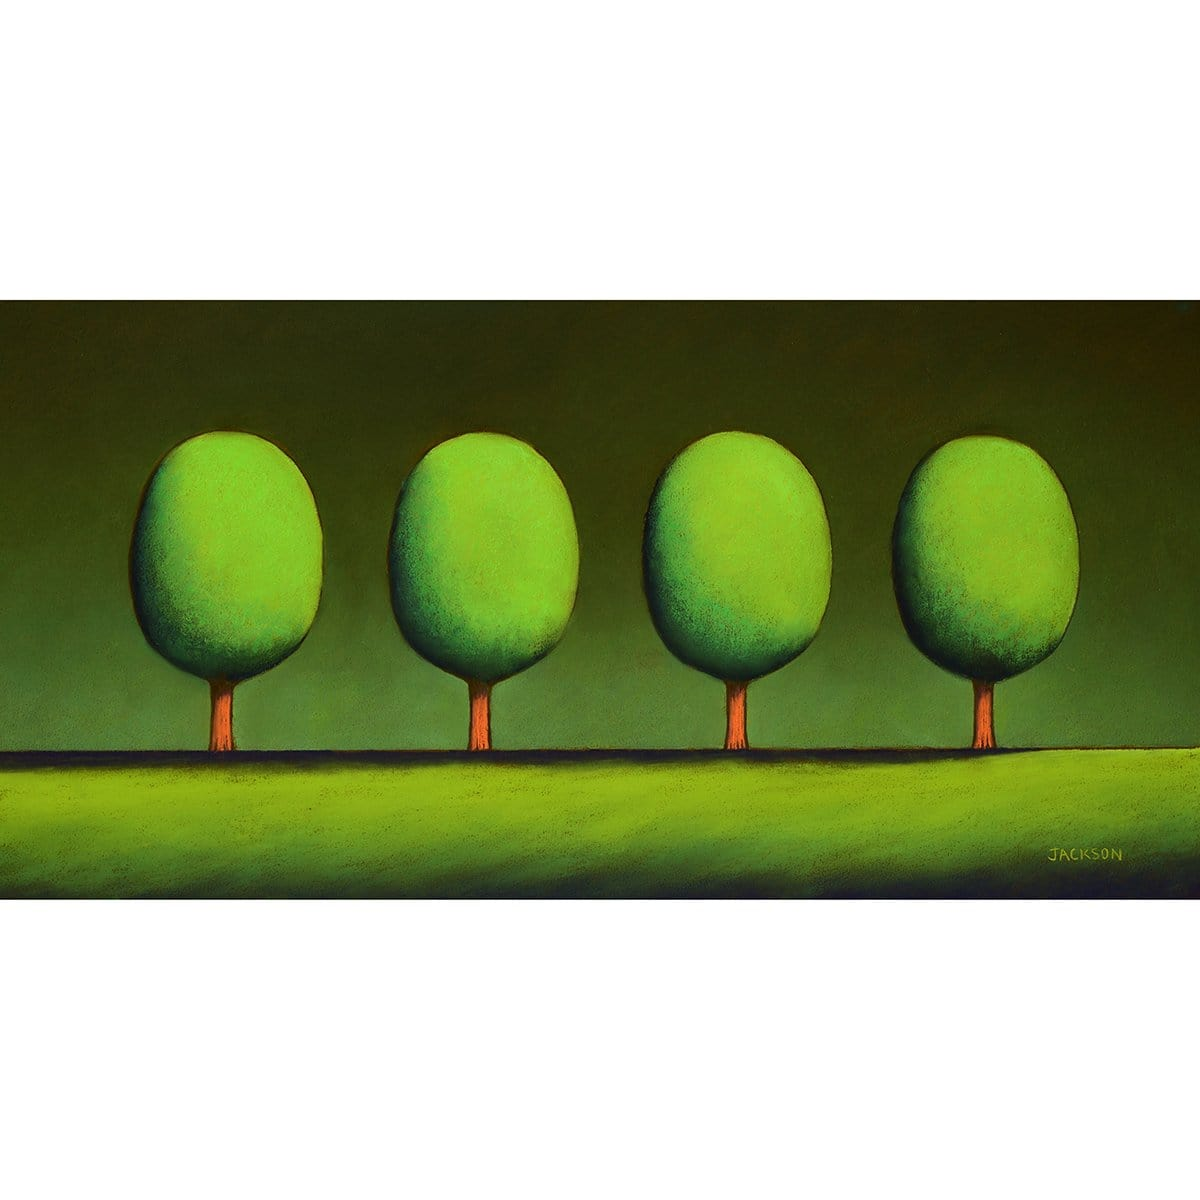 """Four Cool Green Trees"" - Christopher Jackson"